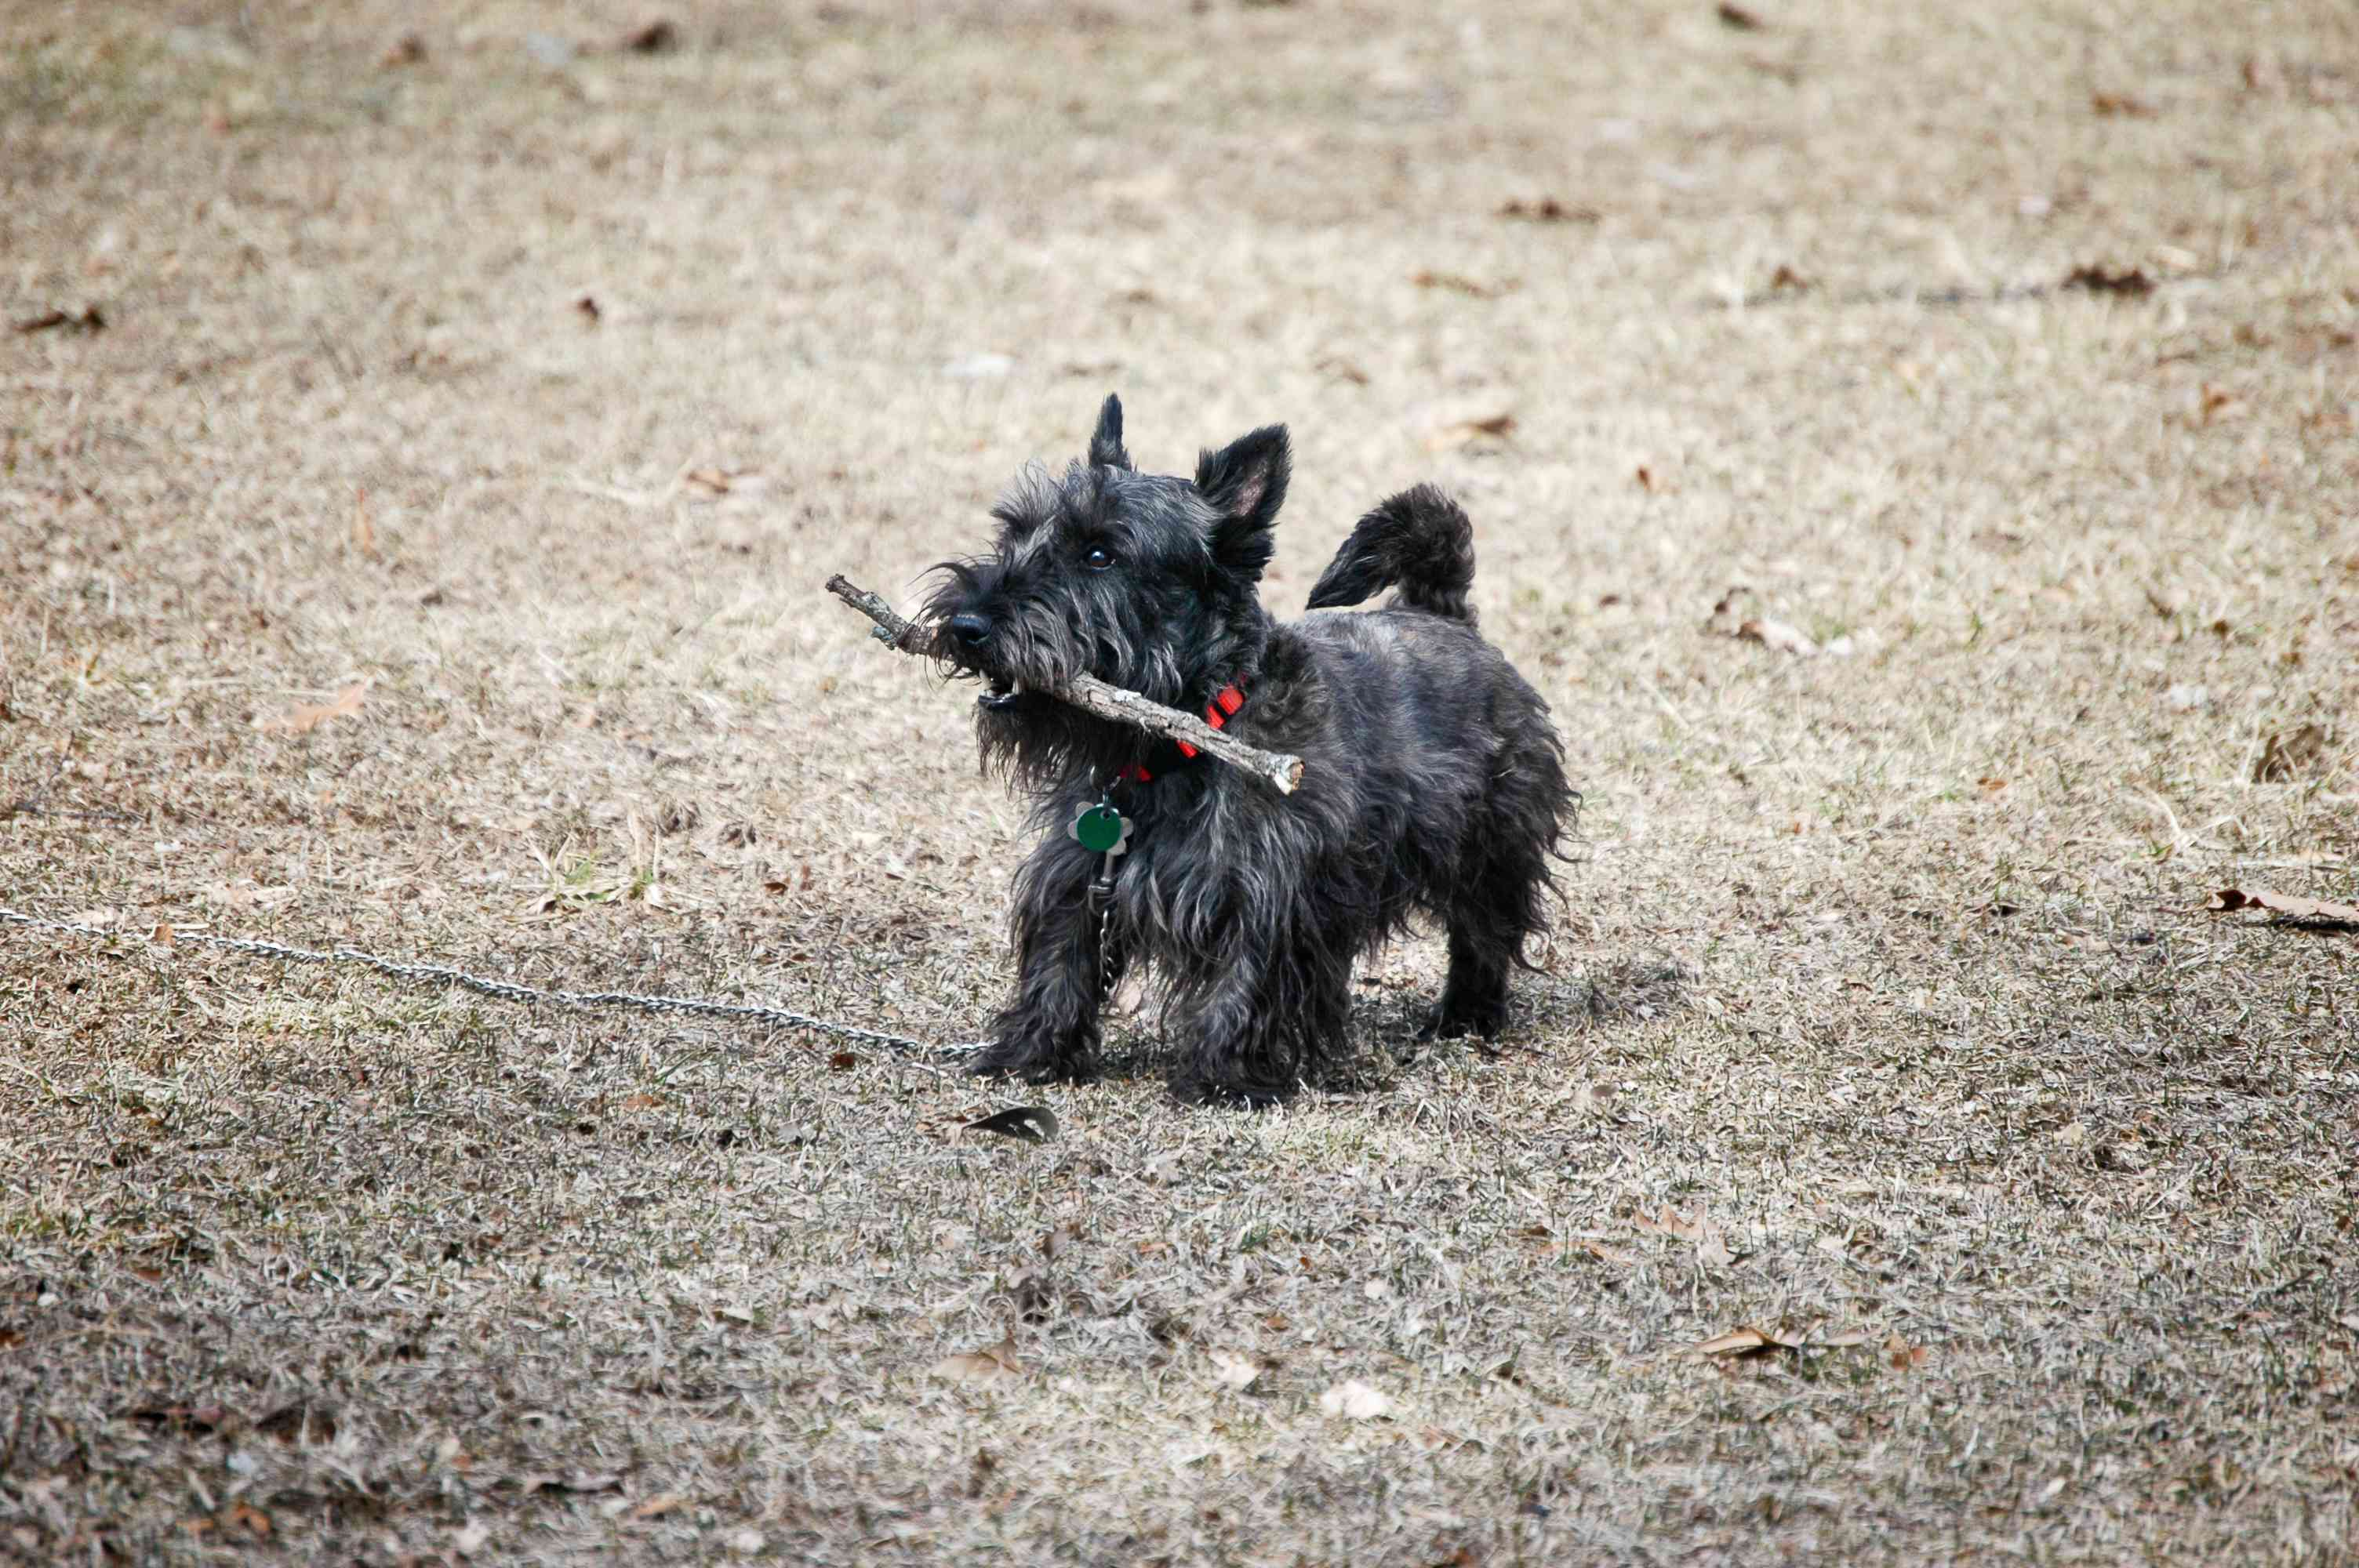 A black Scottie dog with pointy ears carrying a stick in his mouth.